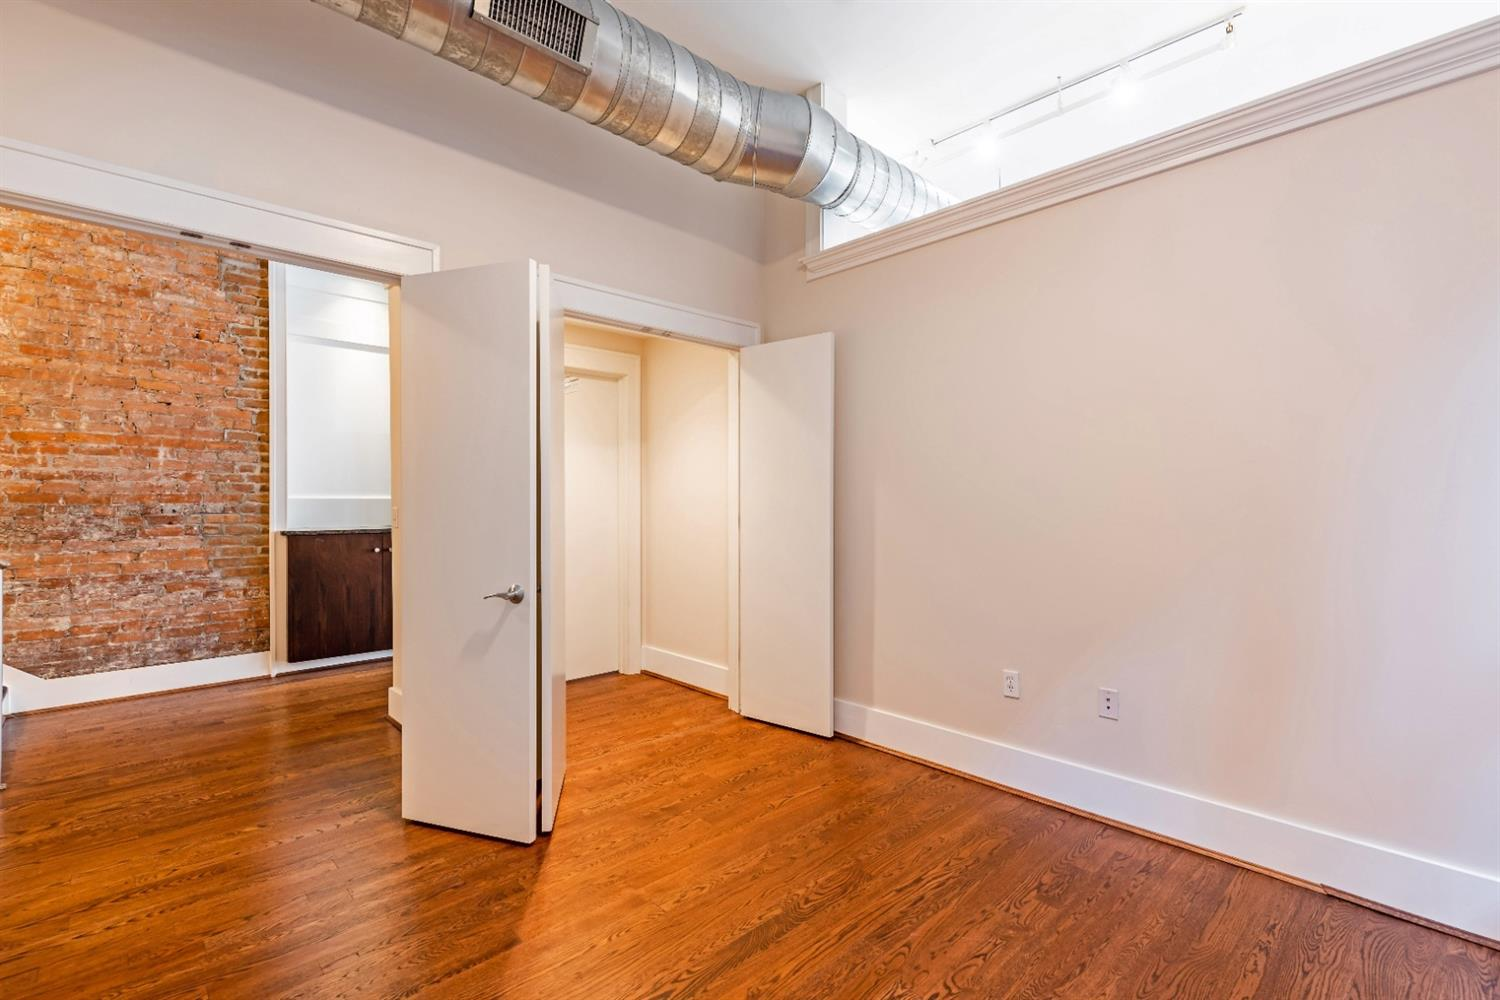 View from Bedroom 3/office, spacious walk-in closet opens from other side for coat closet. This is the un-staged photo.